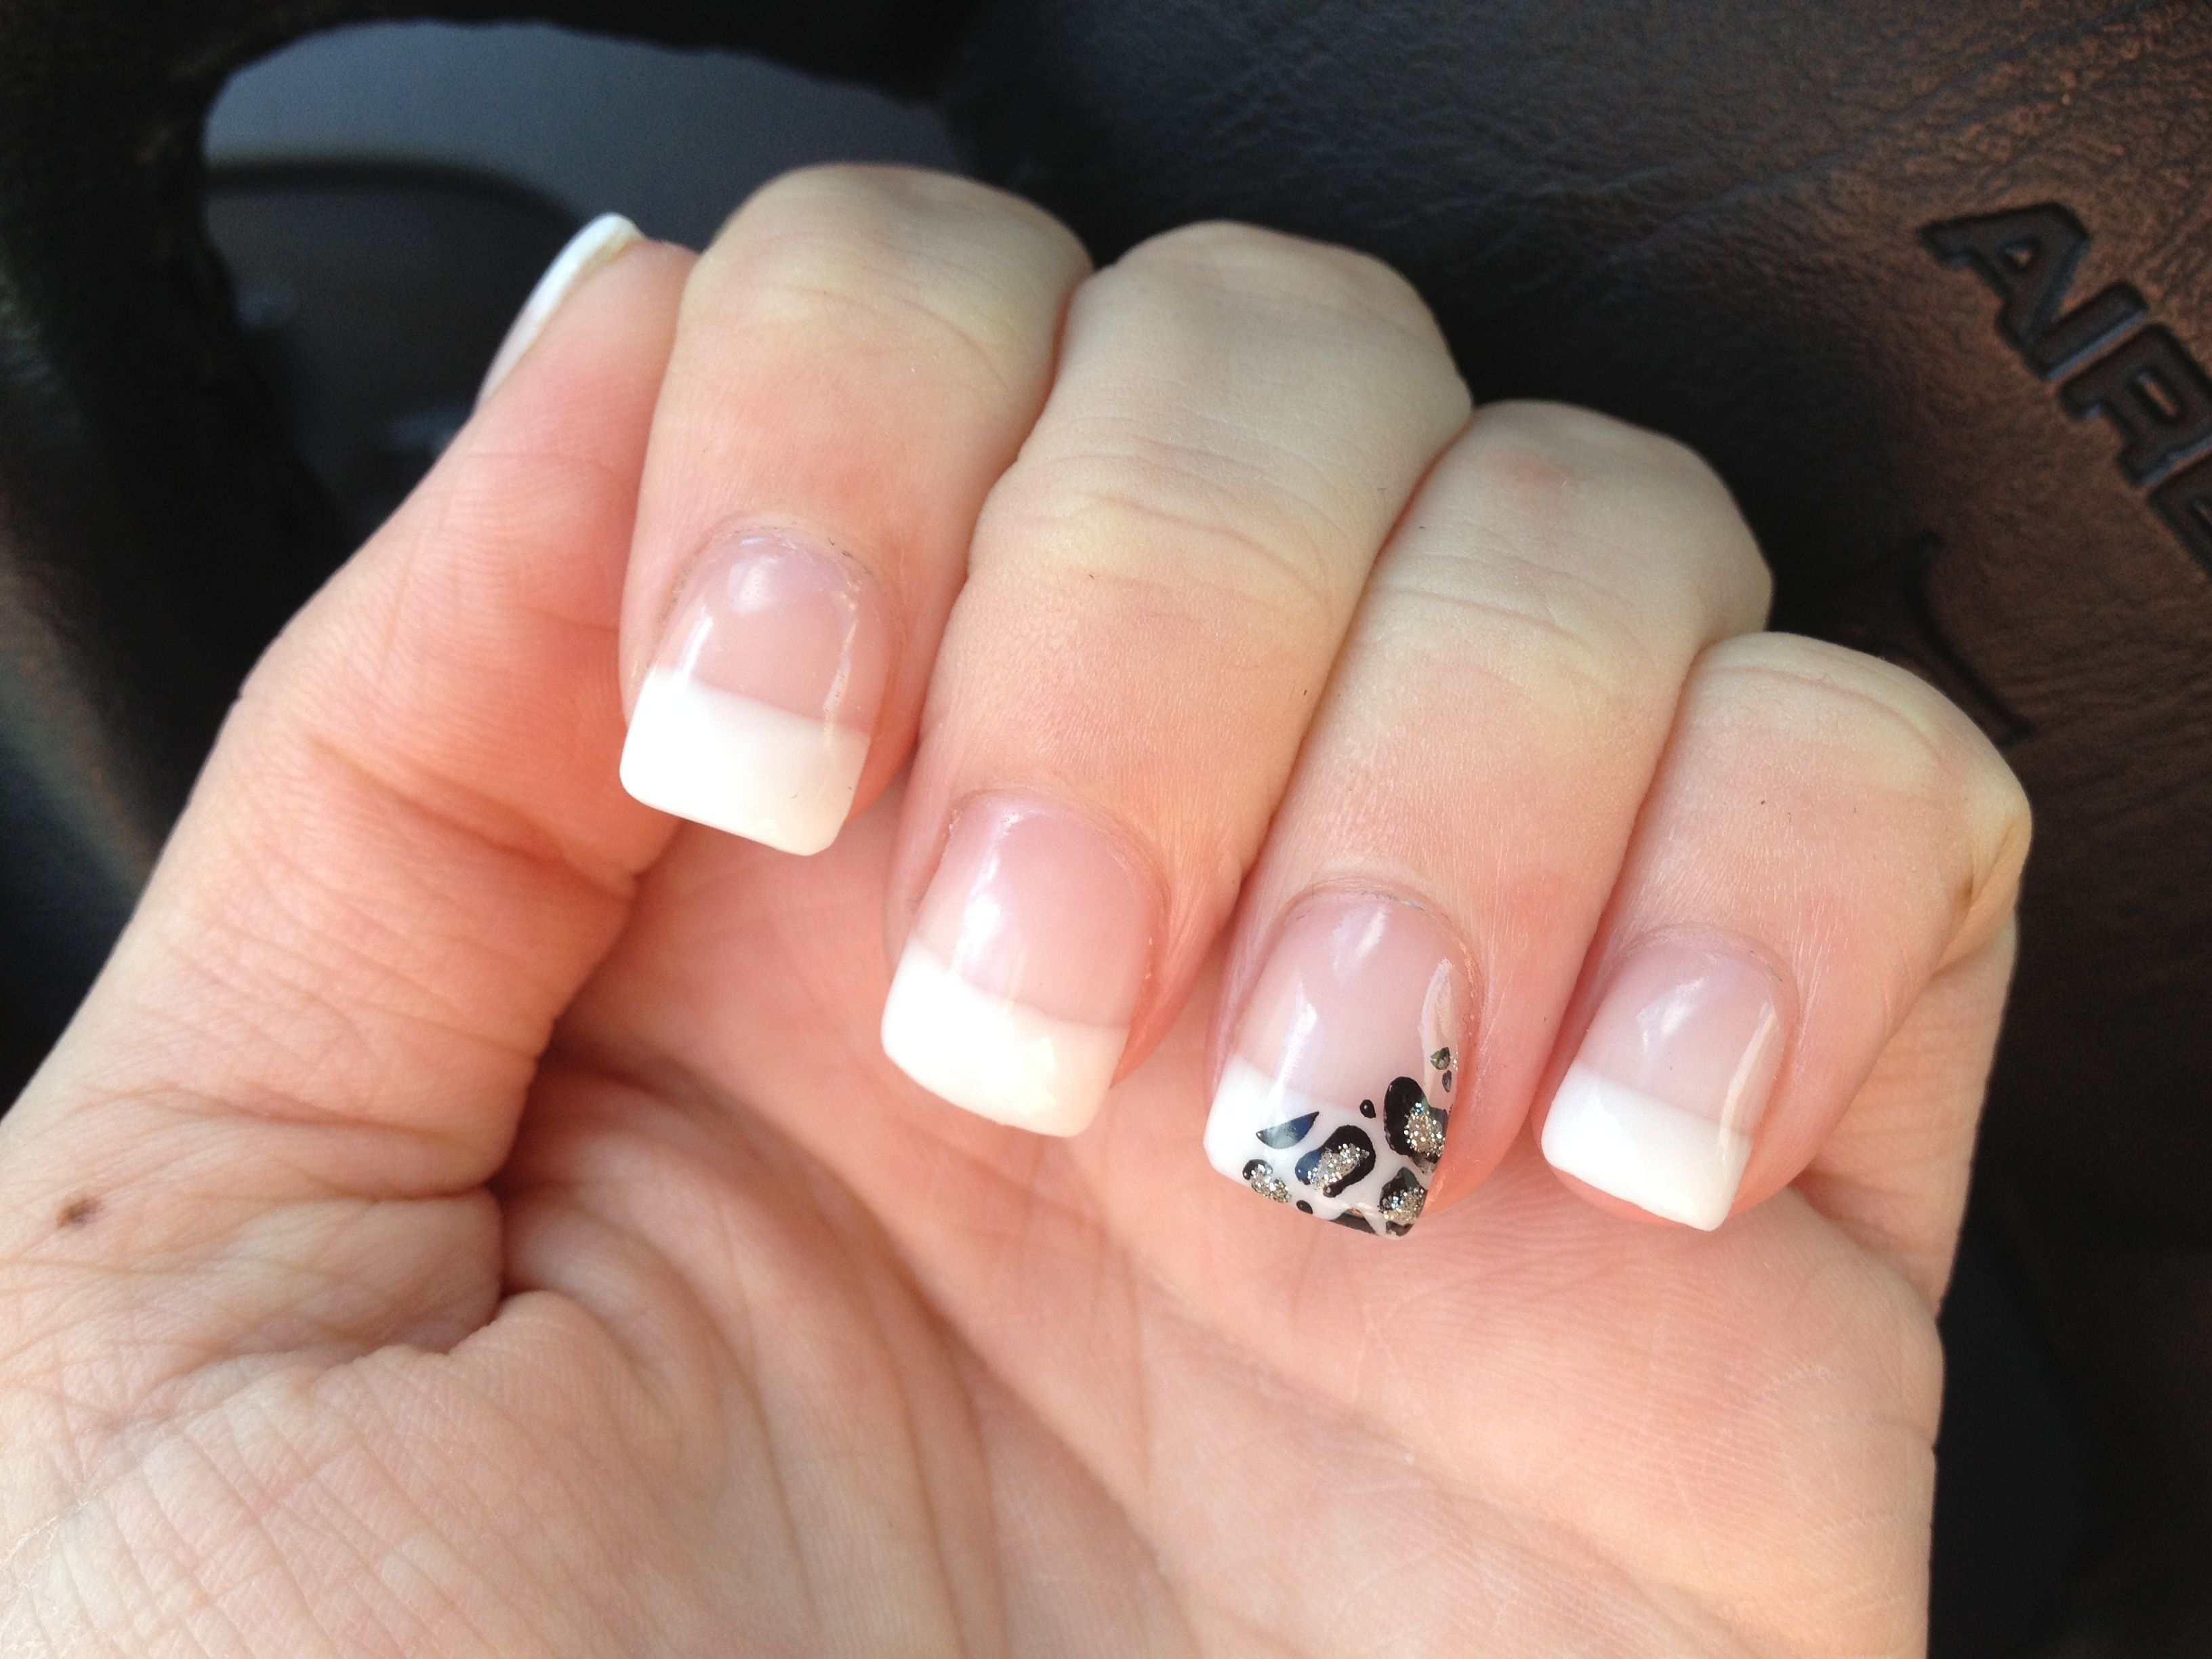 My nails. White tips with leopard | Nails | Pinterest | Fun nails ...